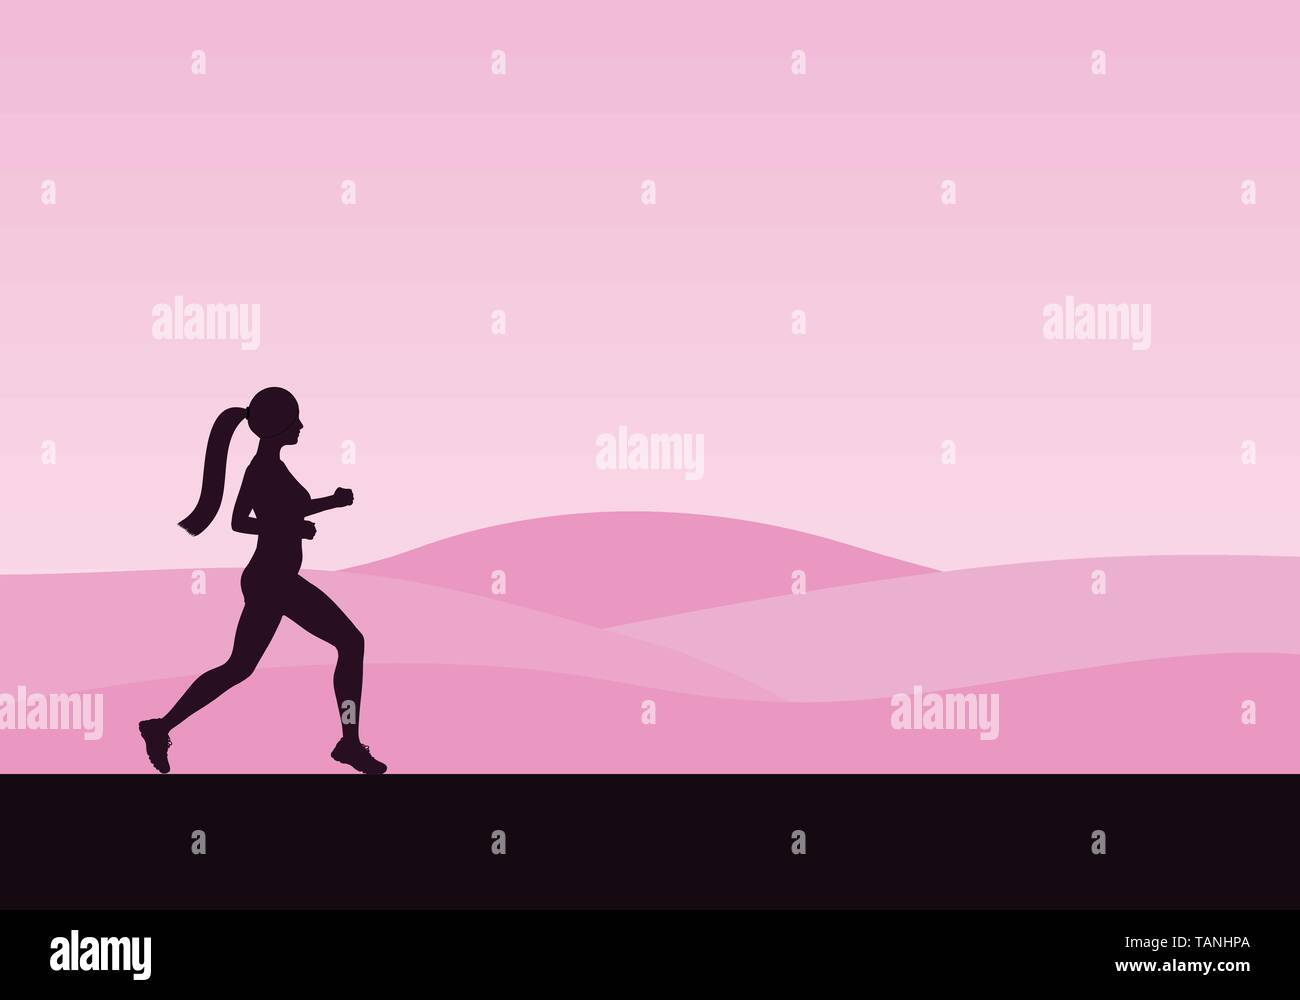 Pink sport design. The silhouette of the running woman in the nature. Hills in the background. - Stock Vector